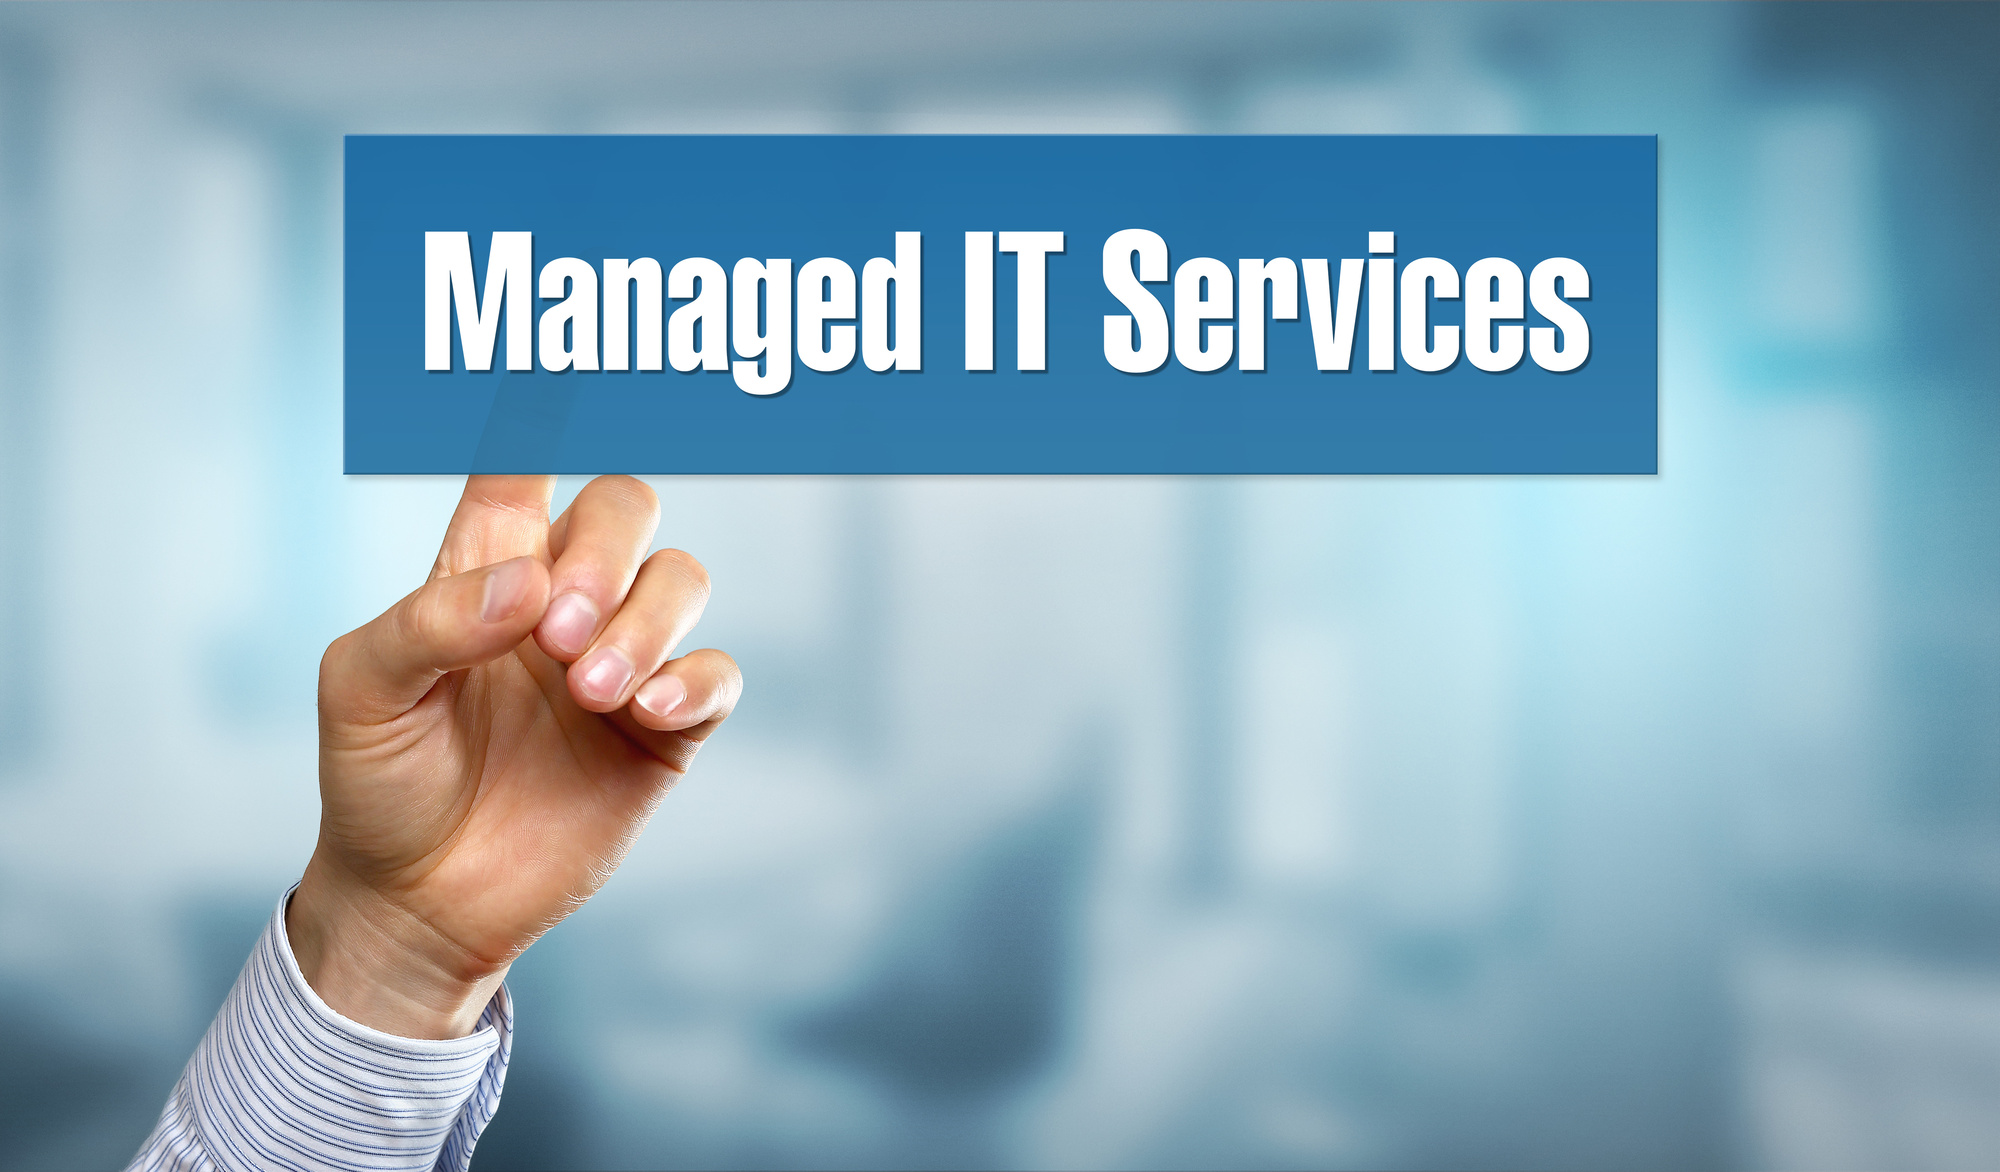 What Are Managed IT Services? Understanding Managed IT